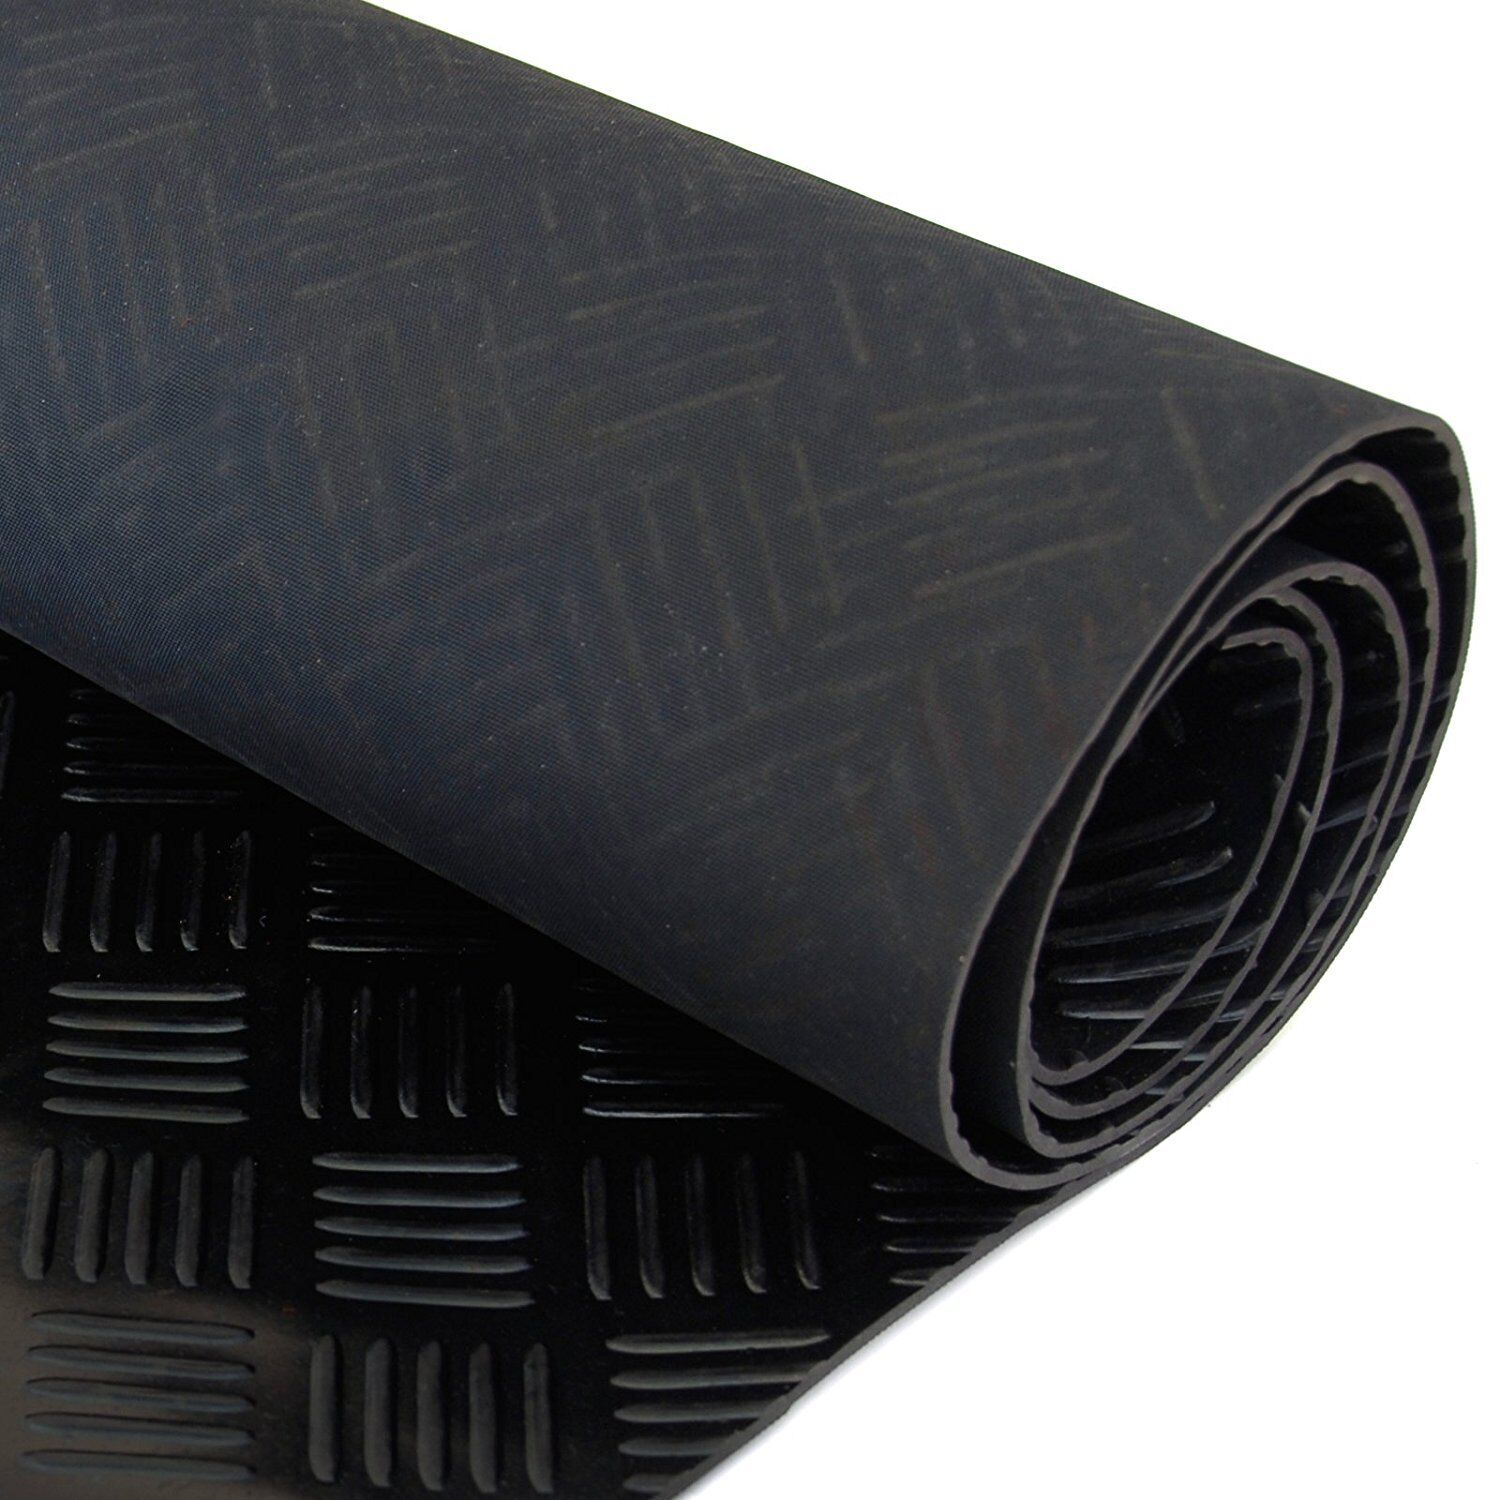 Car Parts - 5 Bar Checker Patterned Rubber Flooring Matting for Garage, Van or Car Roll Mat